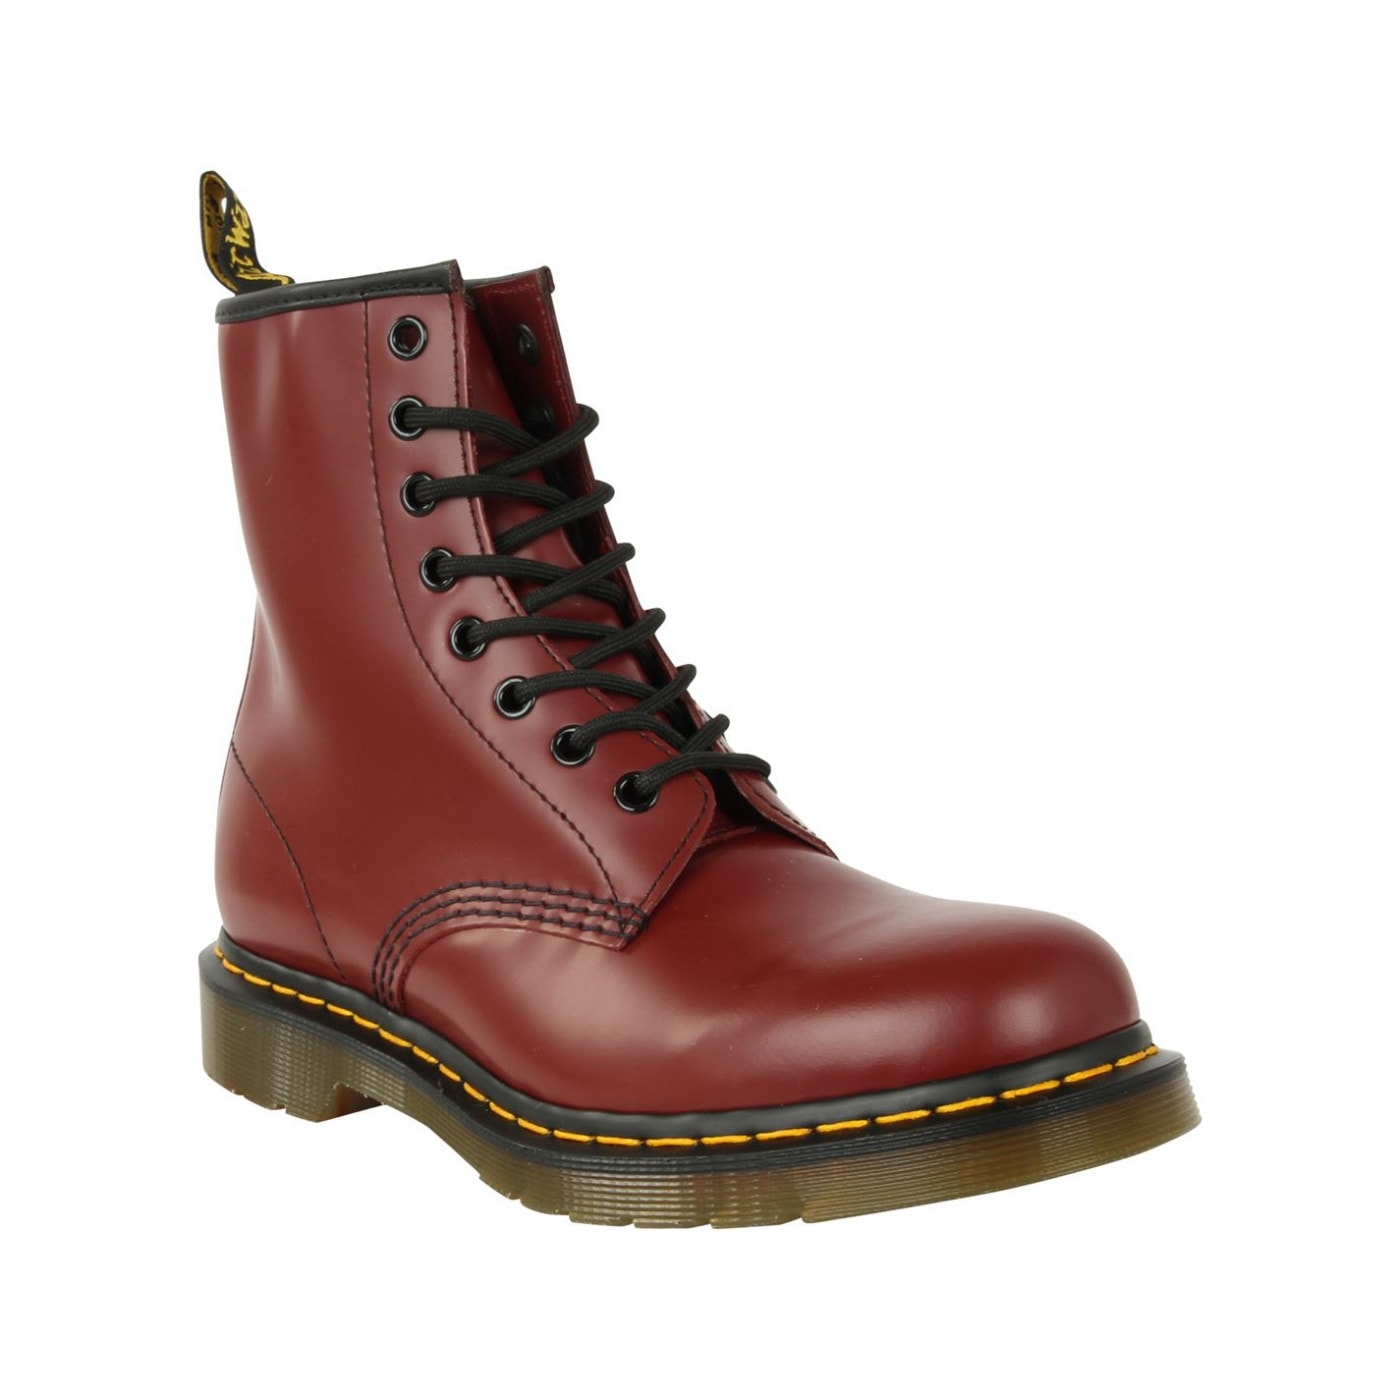 a47b04c0e8 Dr Martens 1460 8 Eye Smooth Womens Boots - FACTCOOL